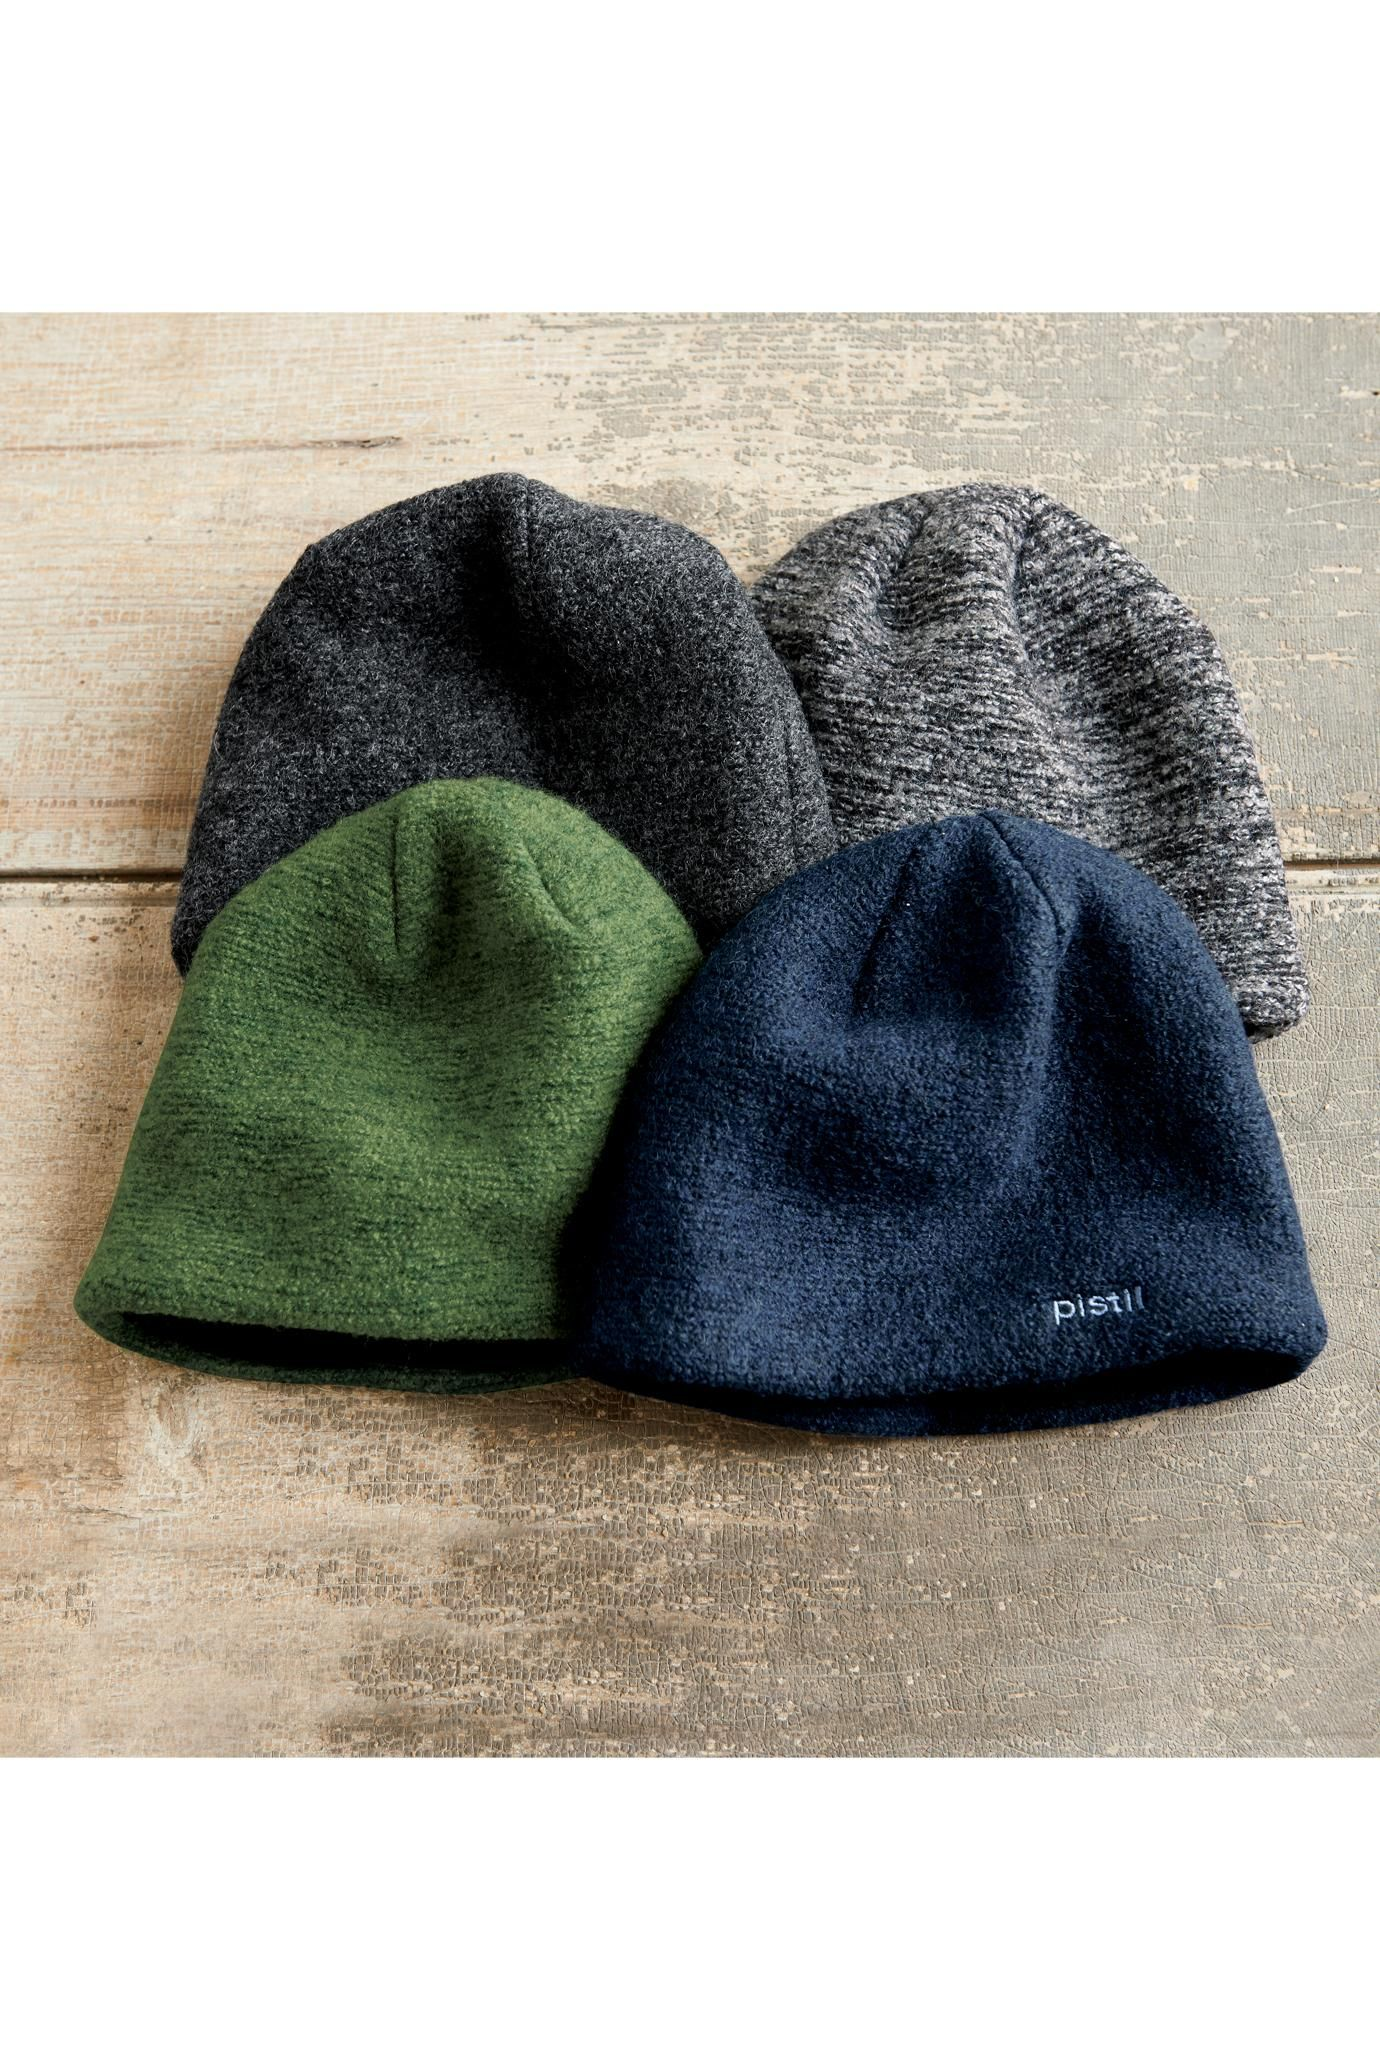 3ce9be0b Otto Winter Beanie from Pistil | Territory Ahead Men | SEW CAN I ...